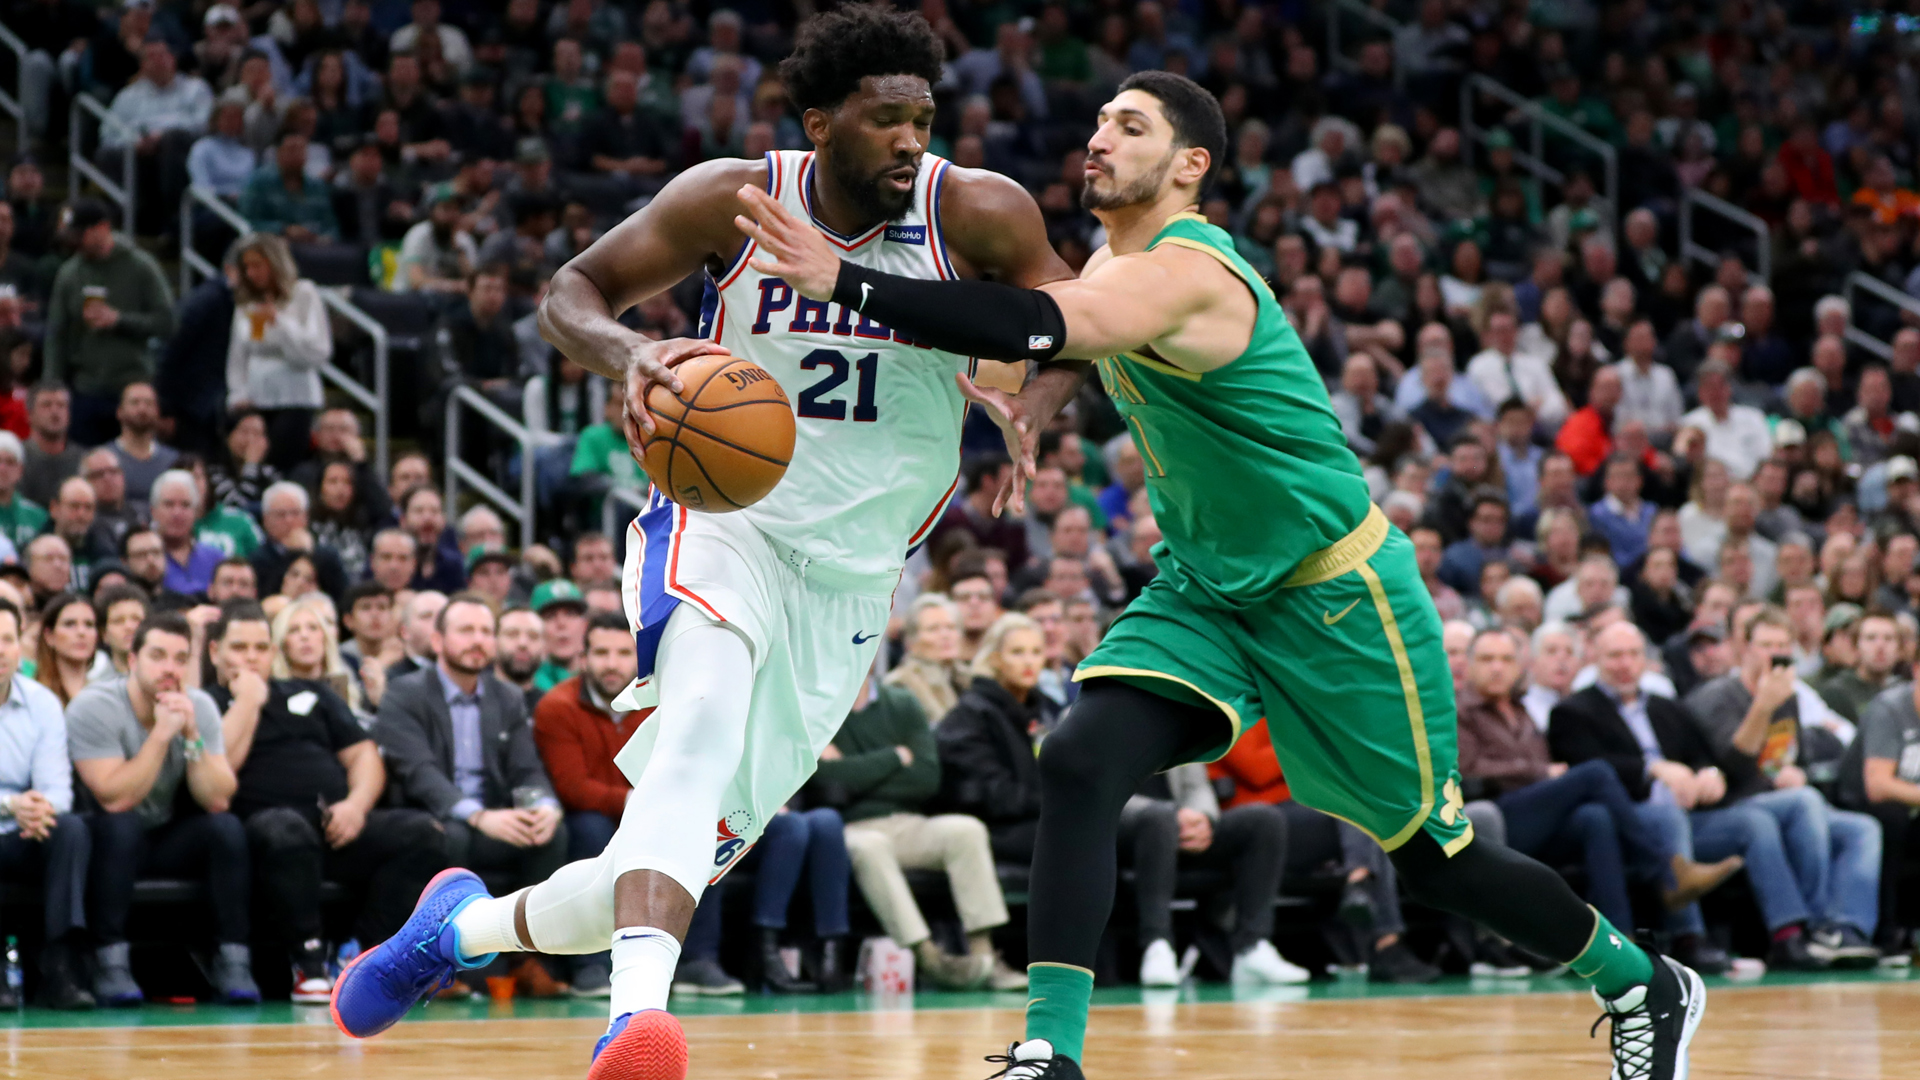 76ers hand Celtics first home loss, Doncic stars again